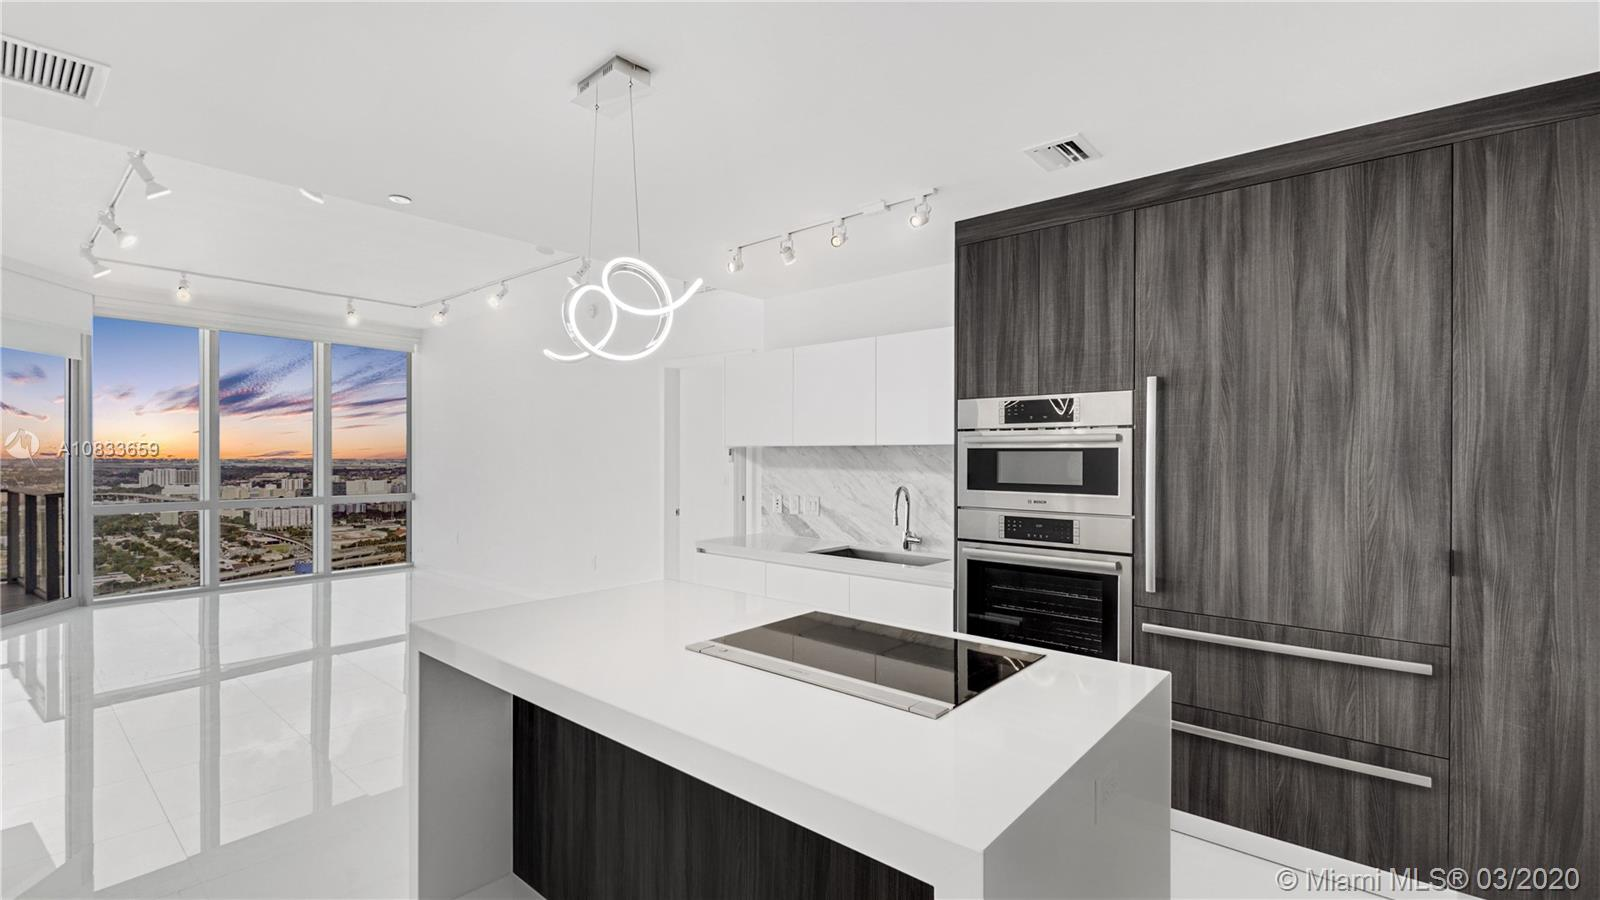 851 NE 1st Ave #4108 For Sale A10833659, FL